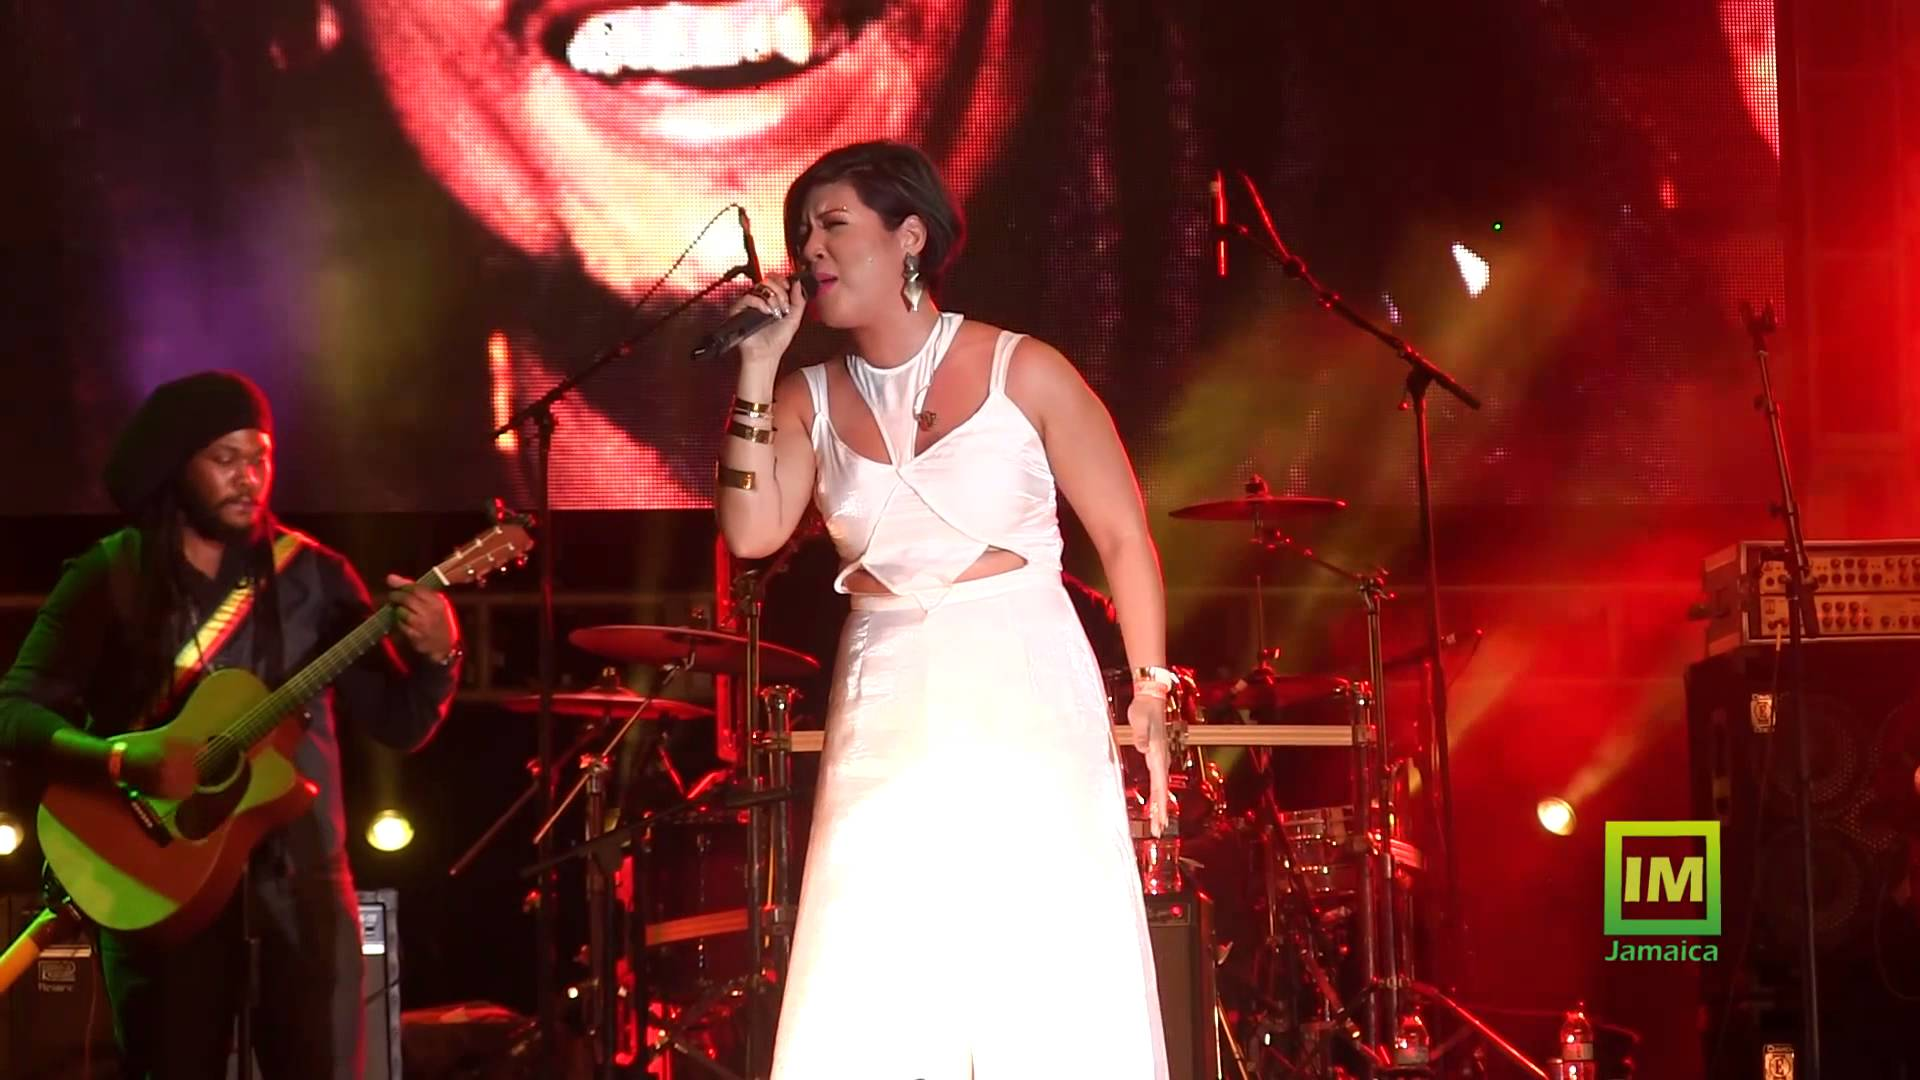 Video: Tessanne Chin - Redemption Song in Kingston, Jamaica